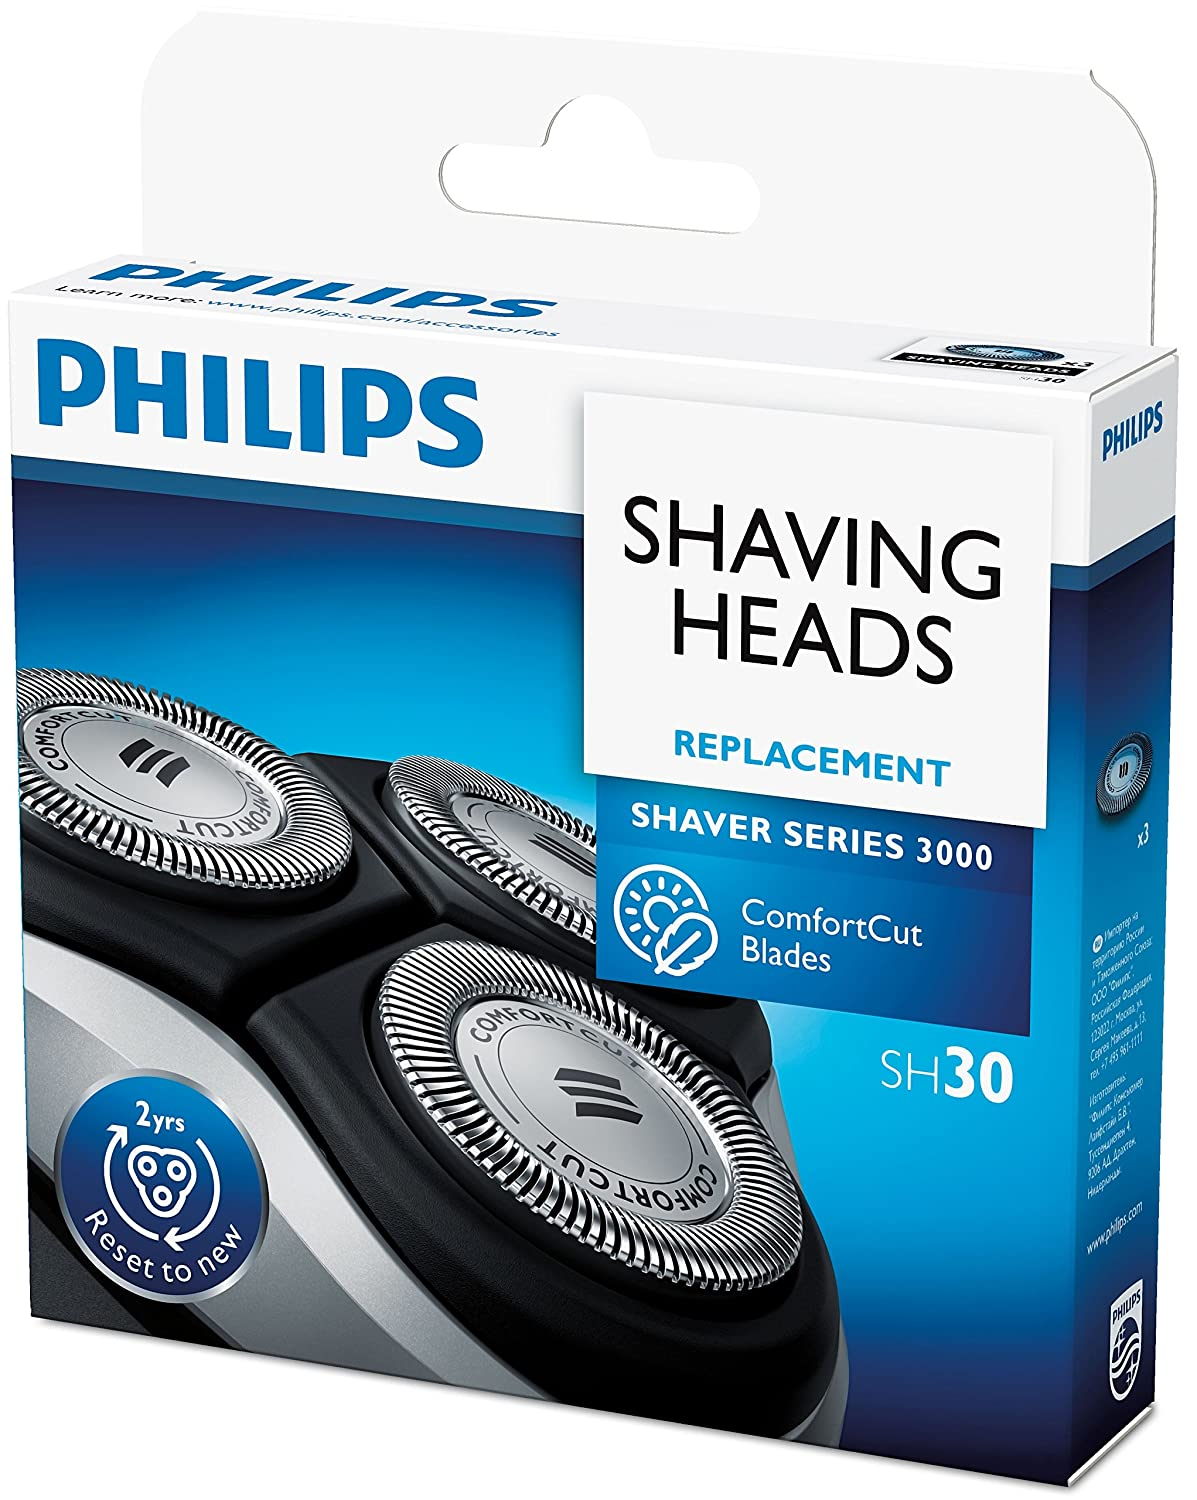 Philips Replacement Shaving Head 1000 Series (S1xxx) / 3000 Series (S3xxx) Pack 1 (3 Piece) [SH30/50]